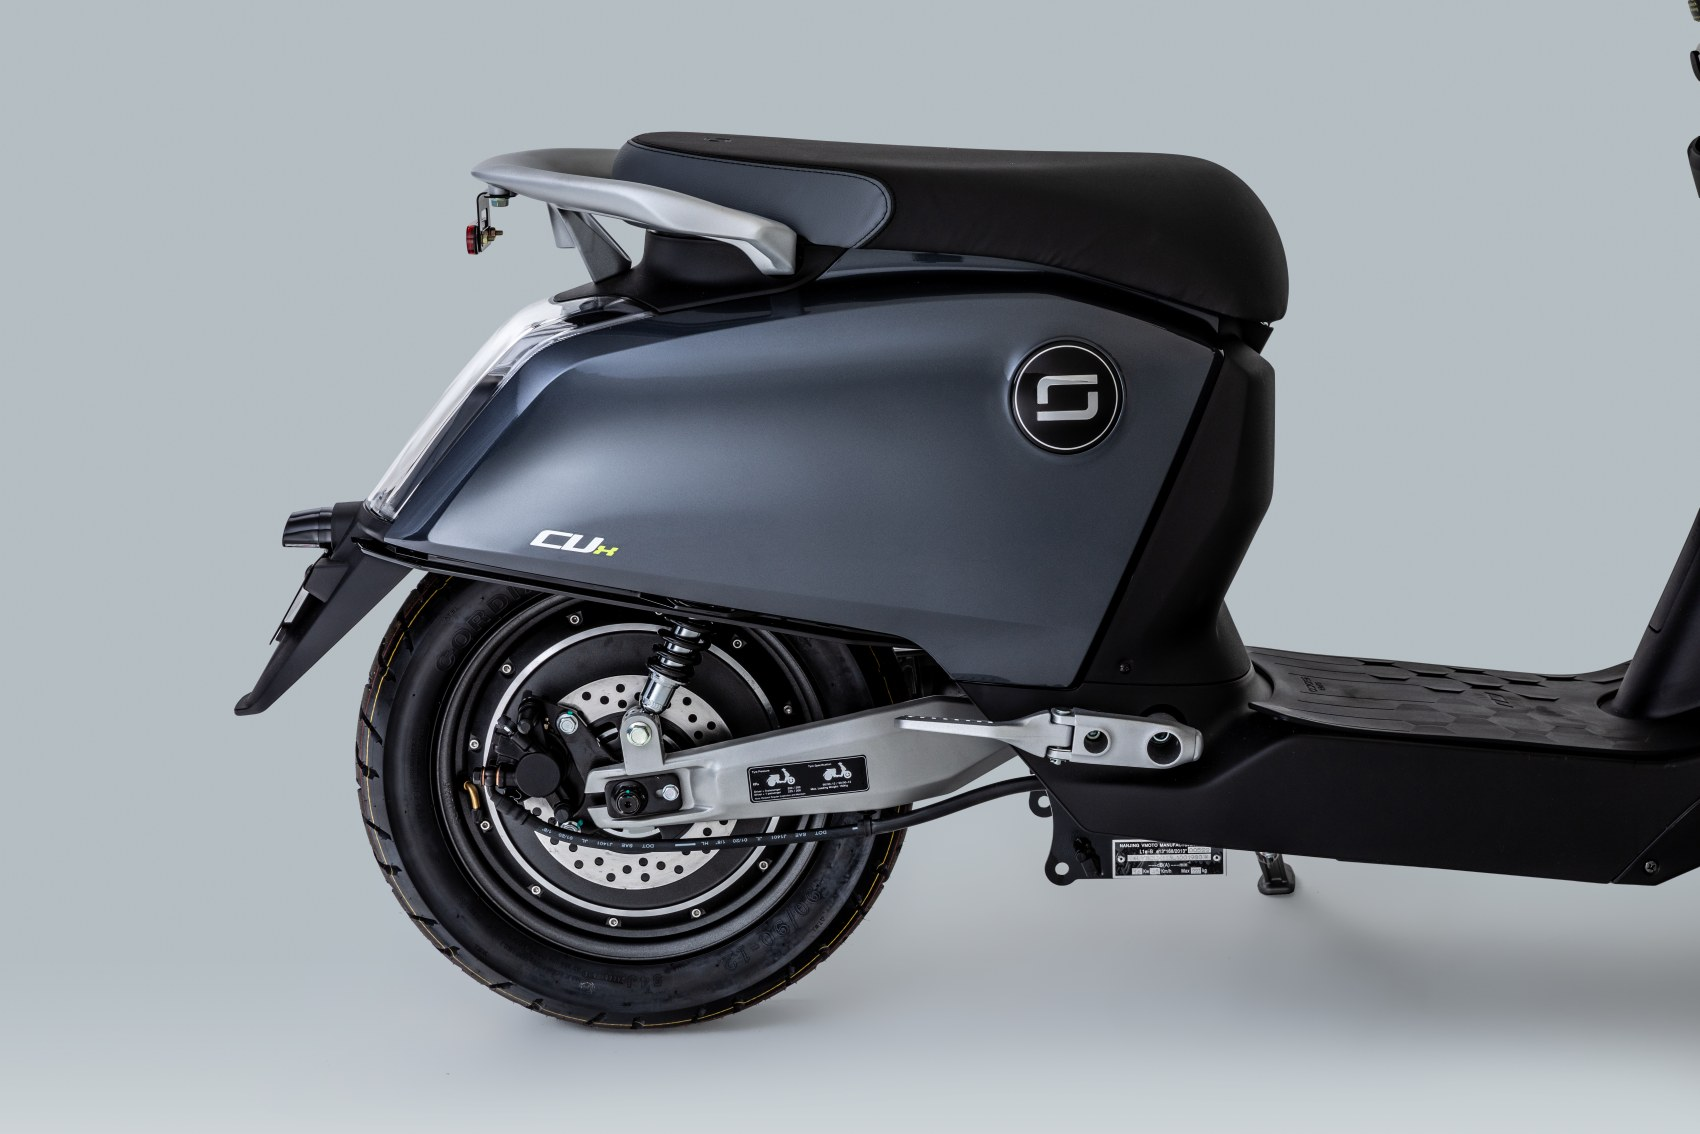 Super Soco CUx electric scooter rear panel